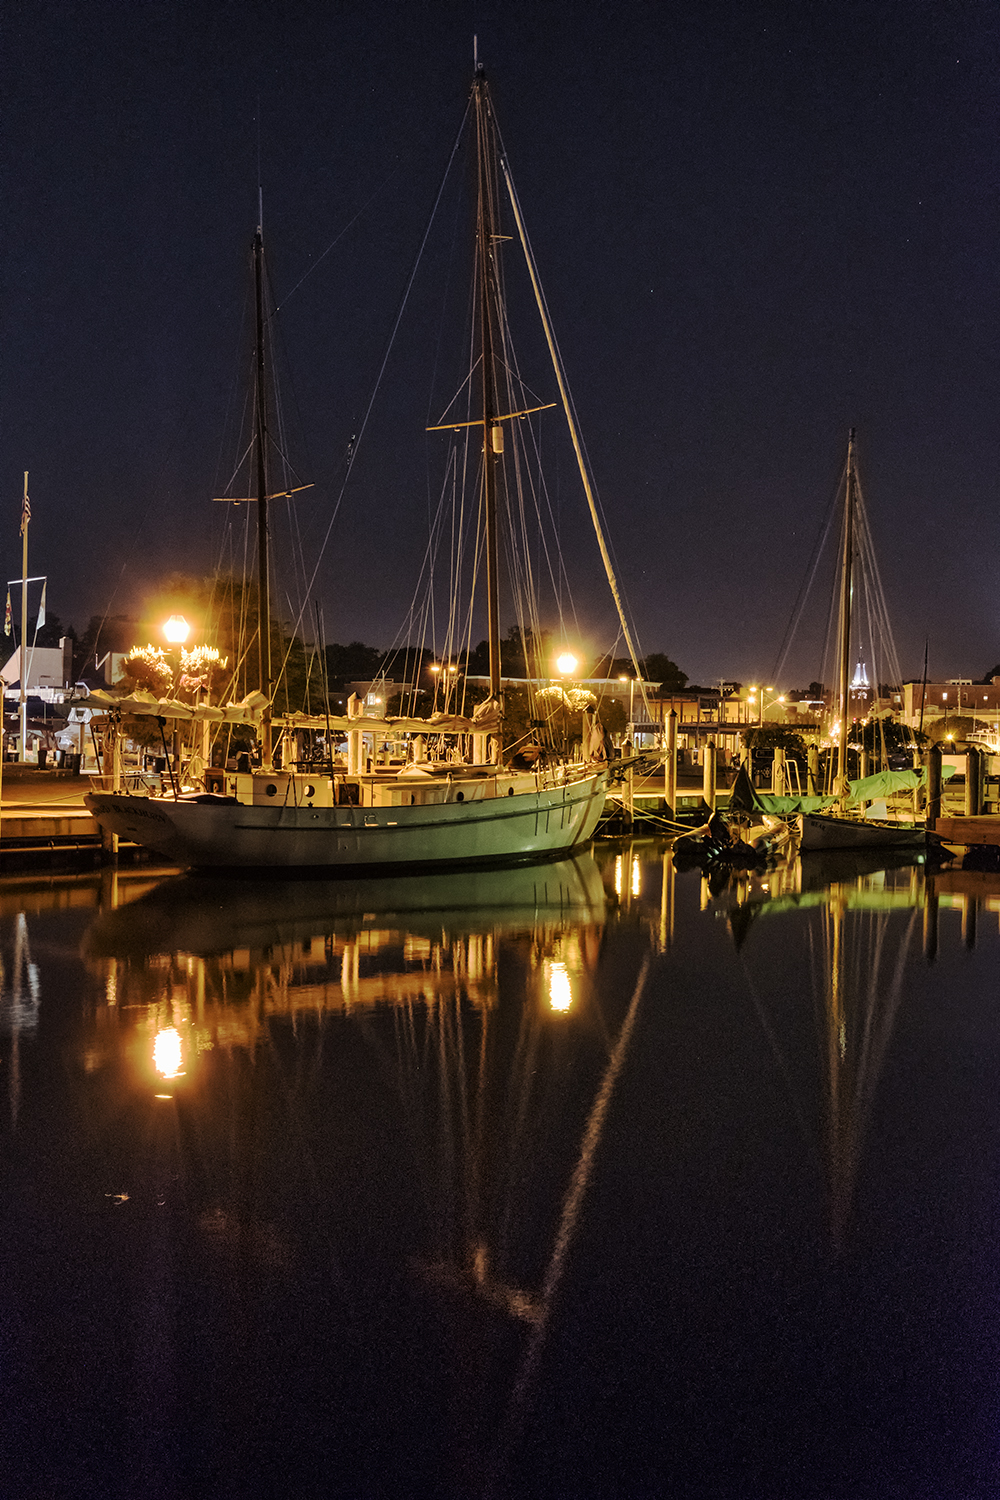 170916 Annapolis City Dock 010-1.jpg